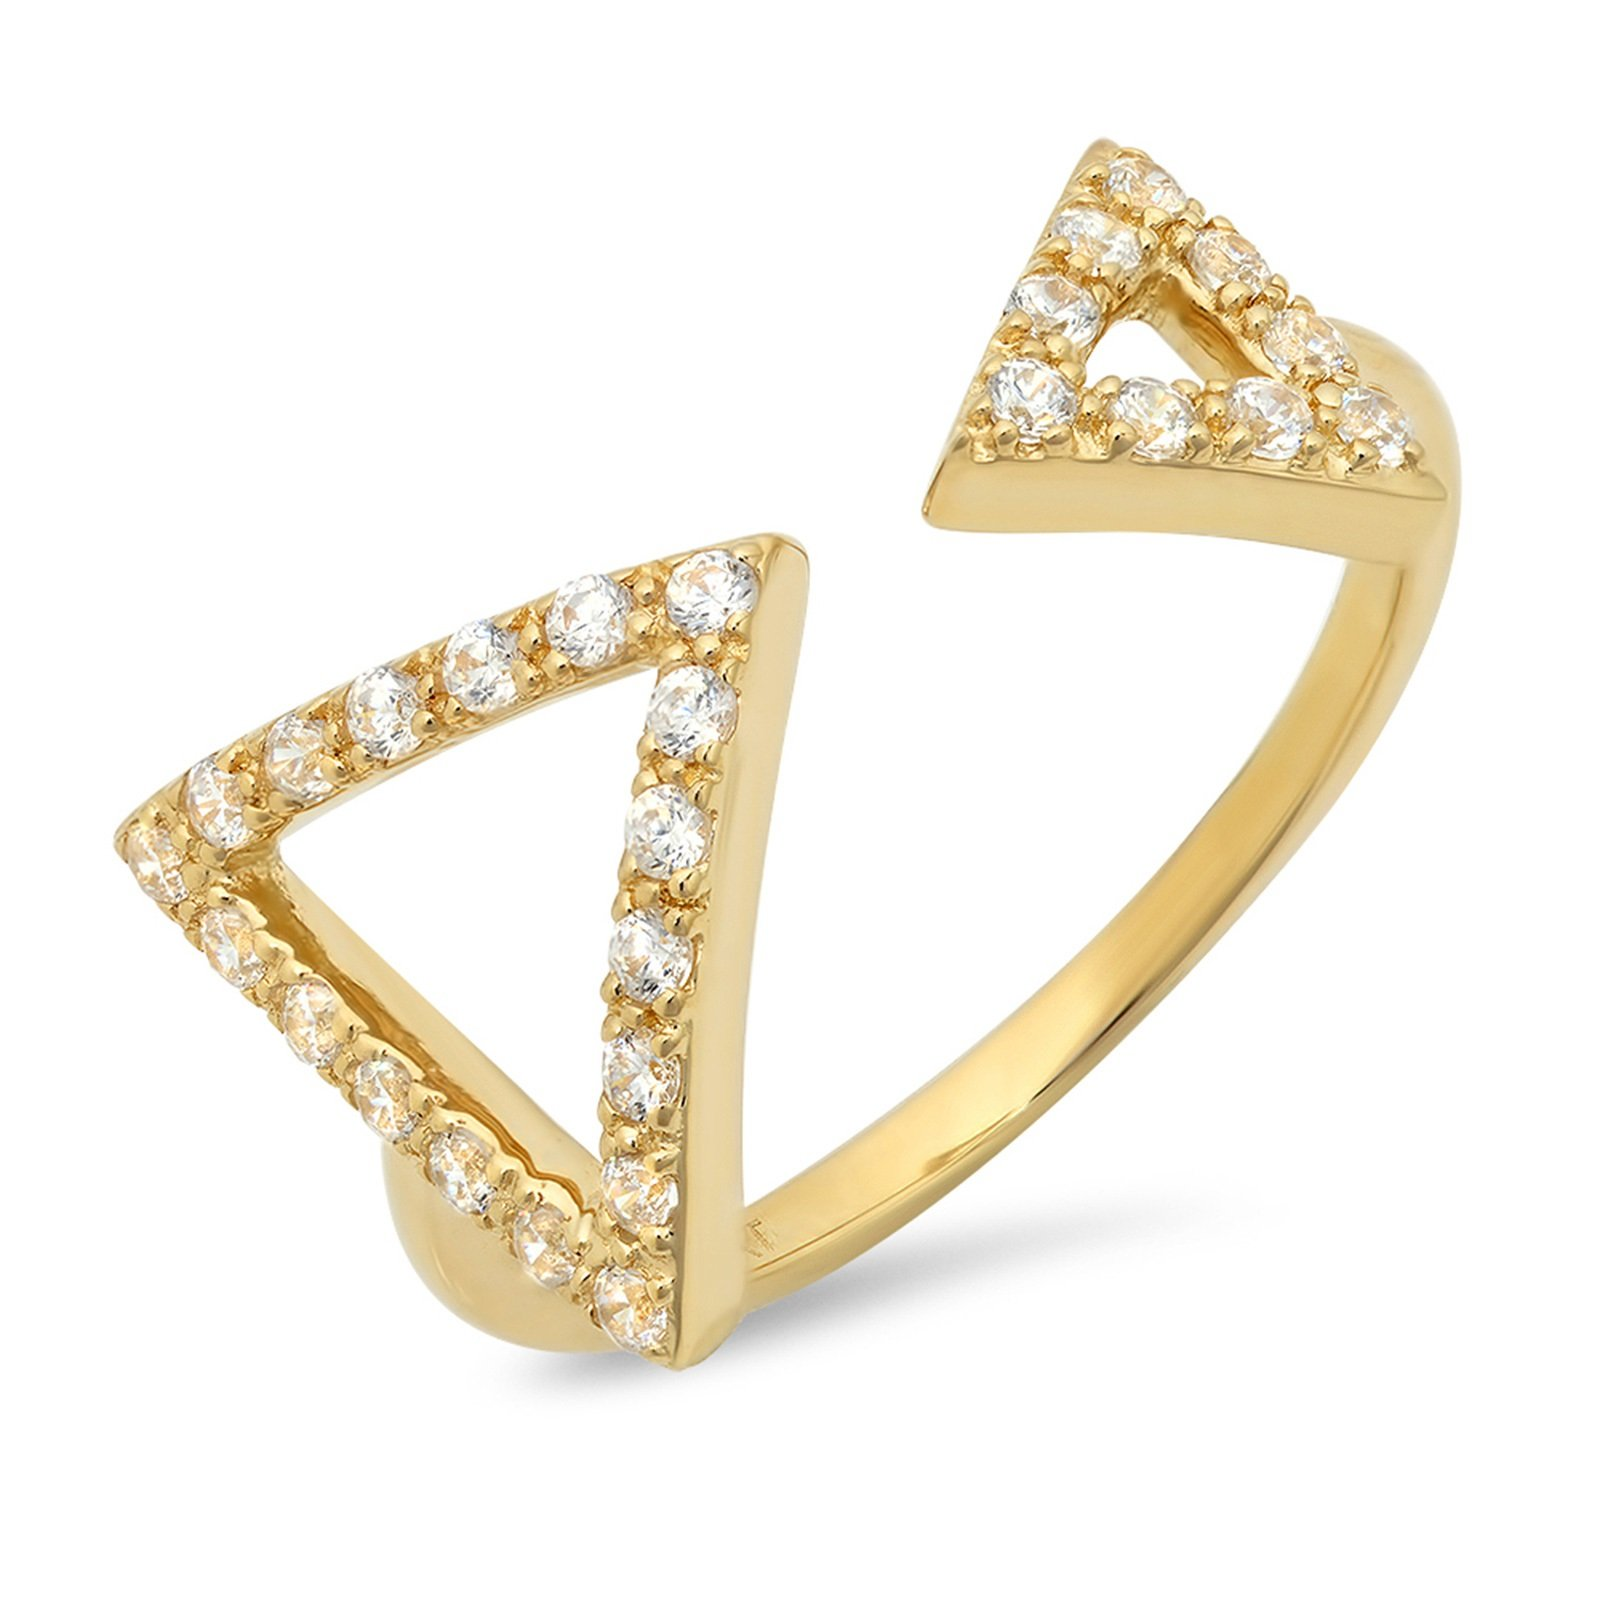 Clara Pucci 0.16ct Round Cut Pave Engagement Contemporary Arrow Design Ring Band 14k Yellow Gold, Size 10.25 by Clara Pucci